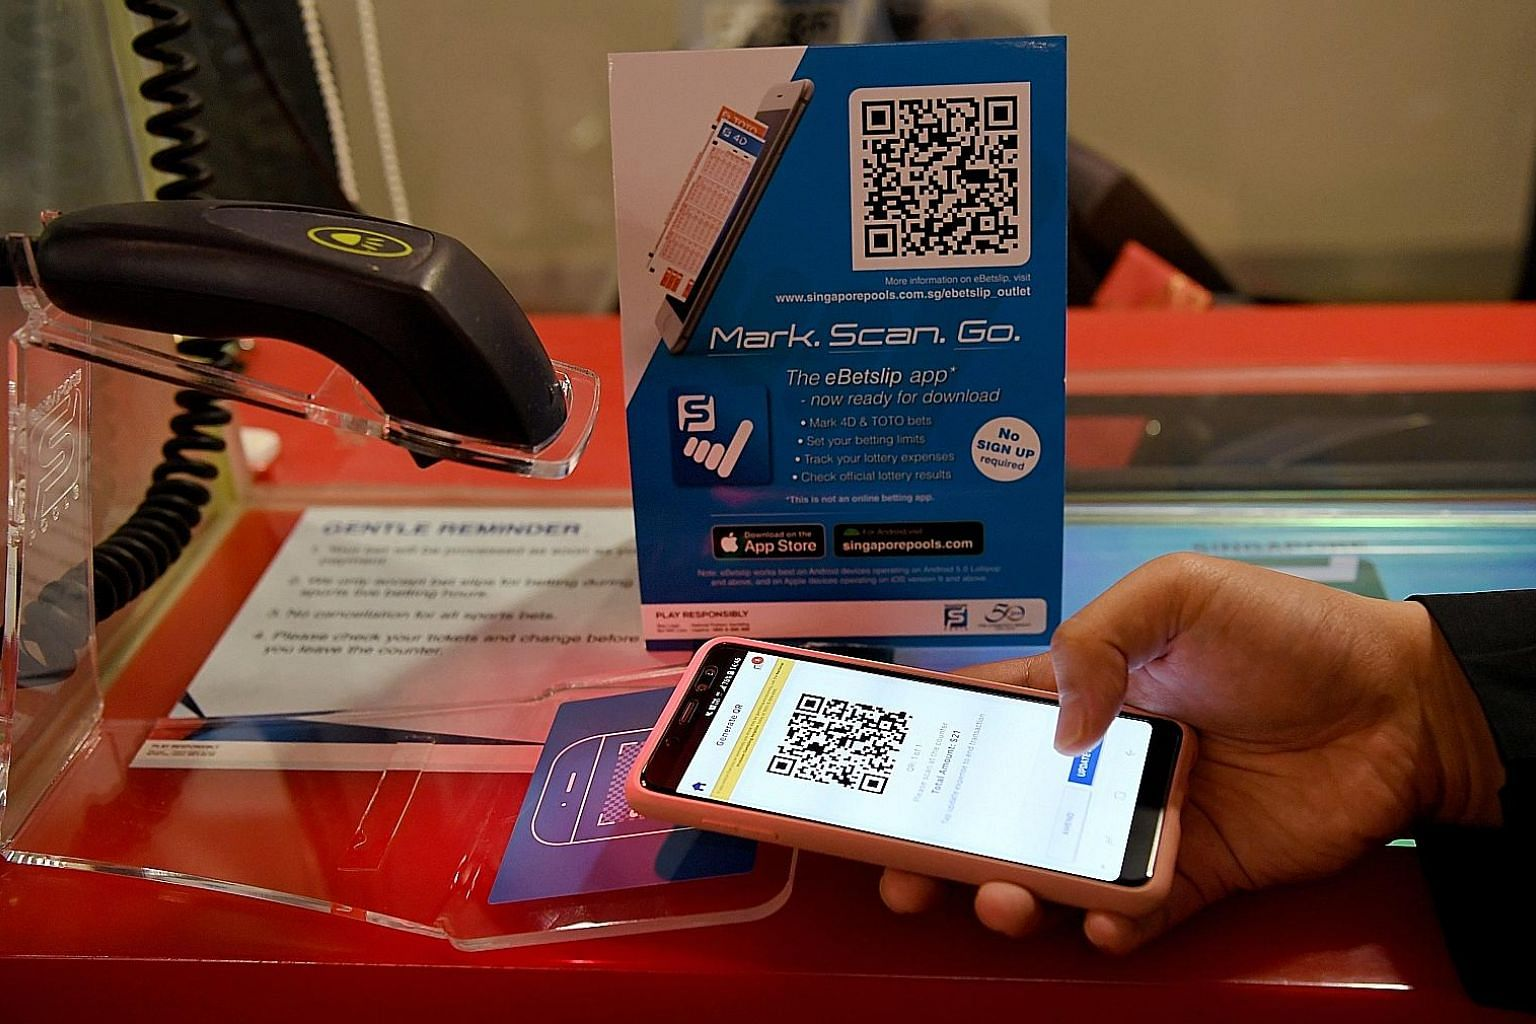 A unique QR code will be generated after an e-betting slip is marked out. Punters can scan the code at Singapore Pools outlets for a physical betting ticket after making payment. Scanning services for the QR codes are available at 25 Singapore Pools